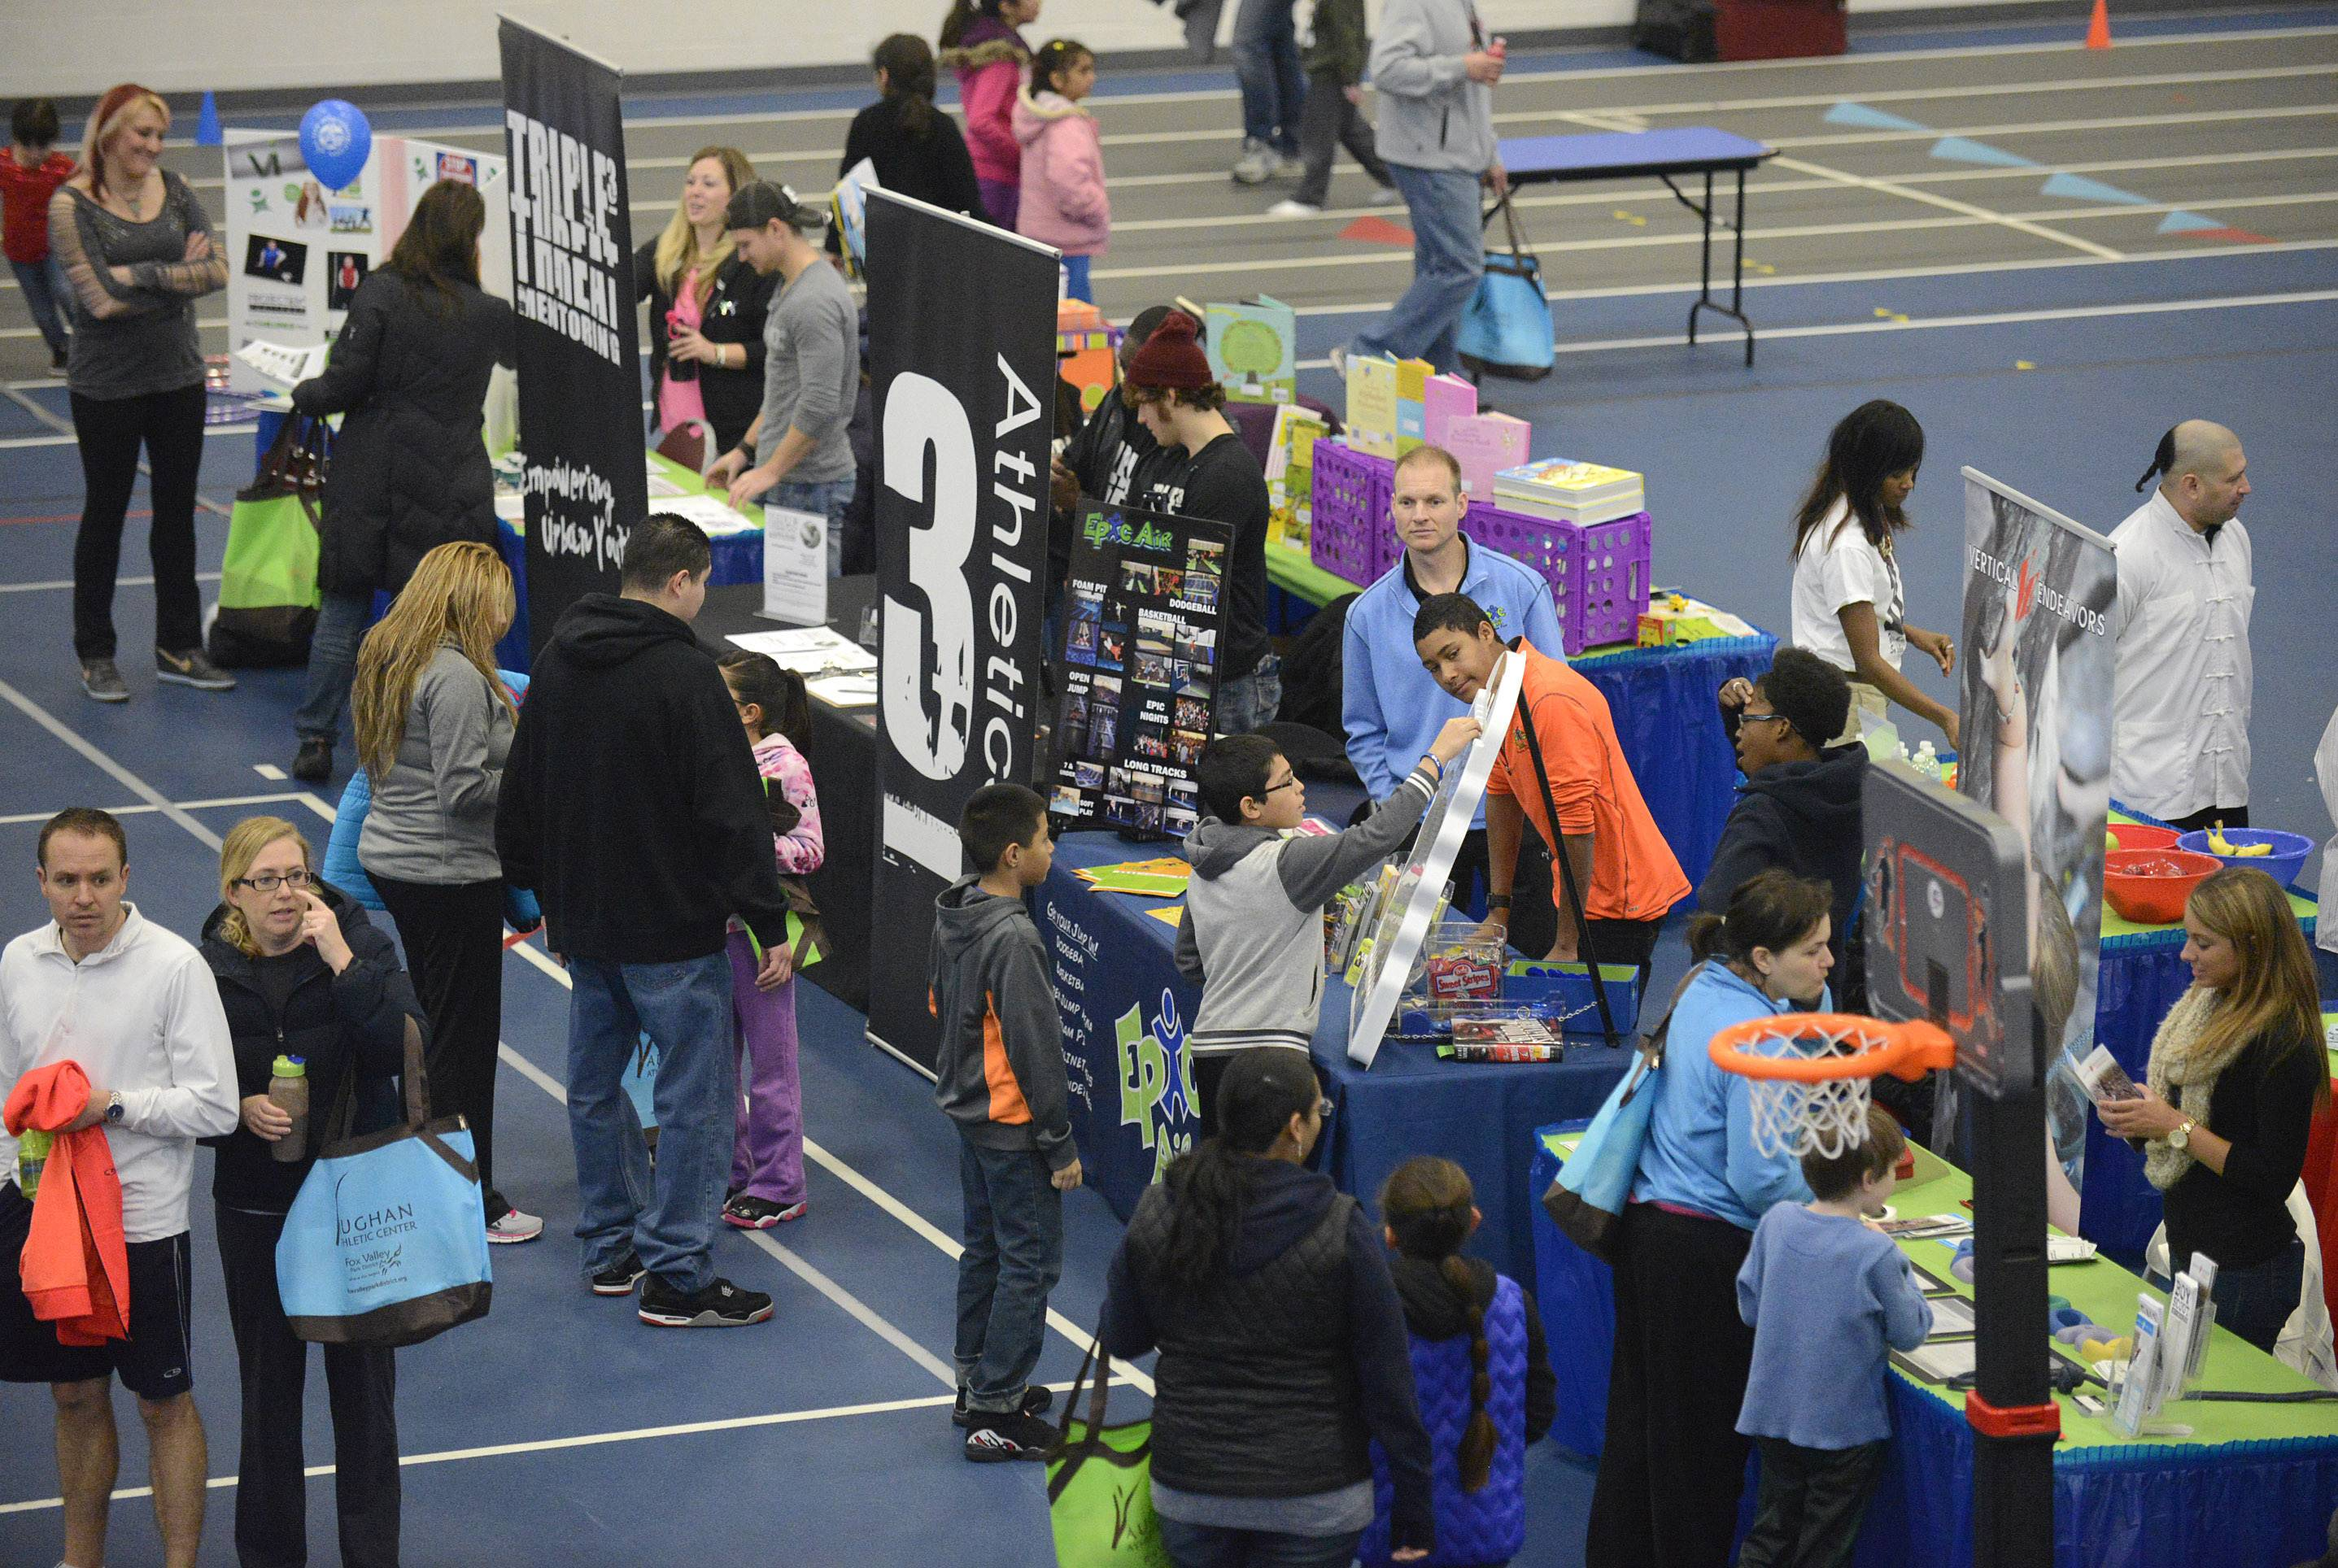 33 vendor tables featuring local businesses in the health, wellness and fitness industries drew families to their tables Saturday with interactive games or free goodies at the annual Fitness Fun Fair for Kids at the Vaughn Athletic Center in Aurora.